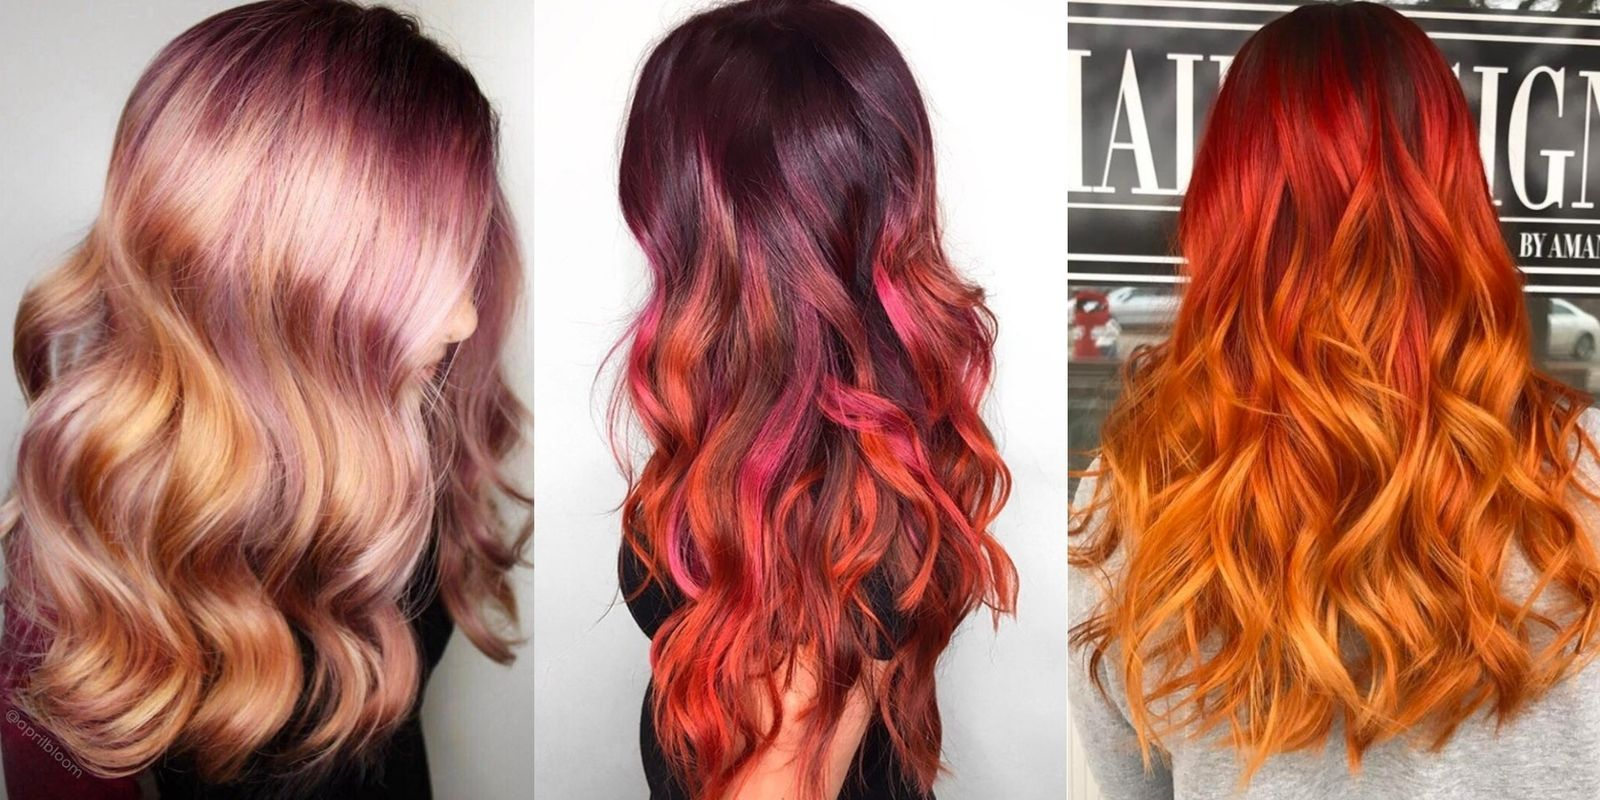 The best red ombré hair inspiration hair inspiration diy haircare